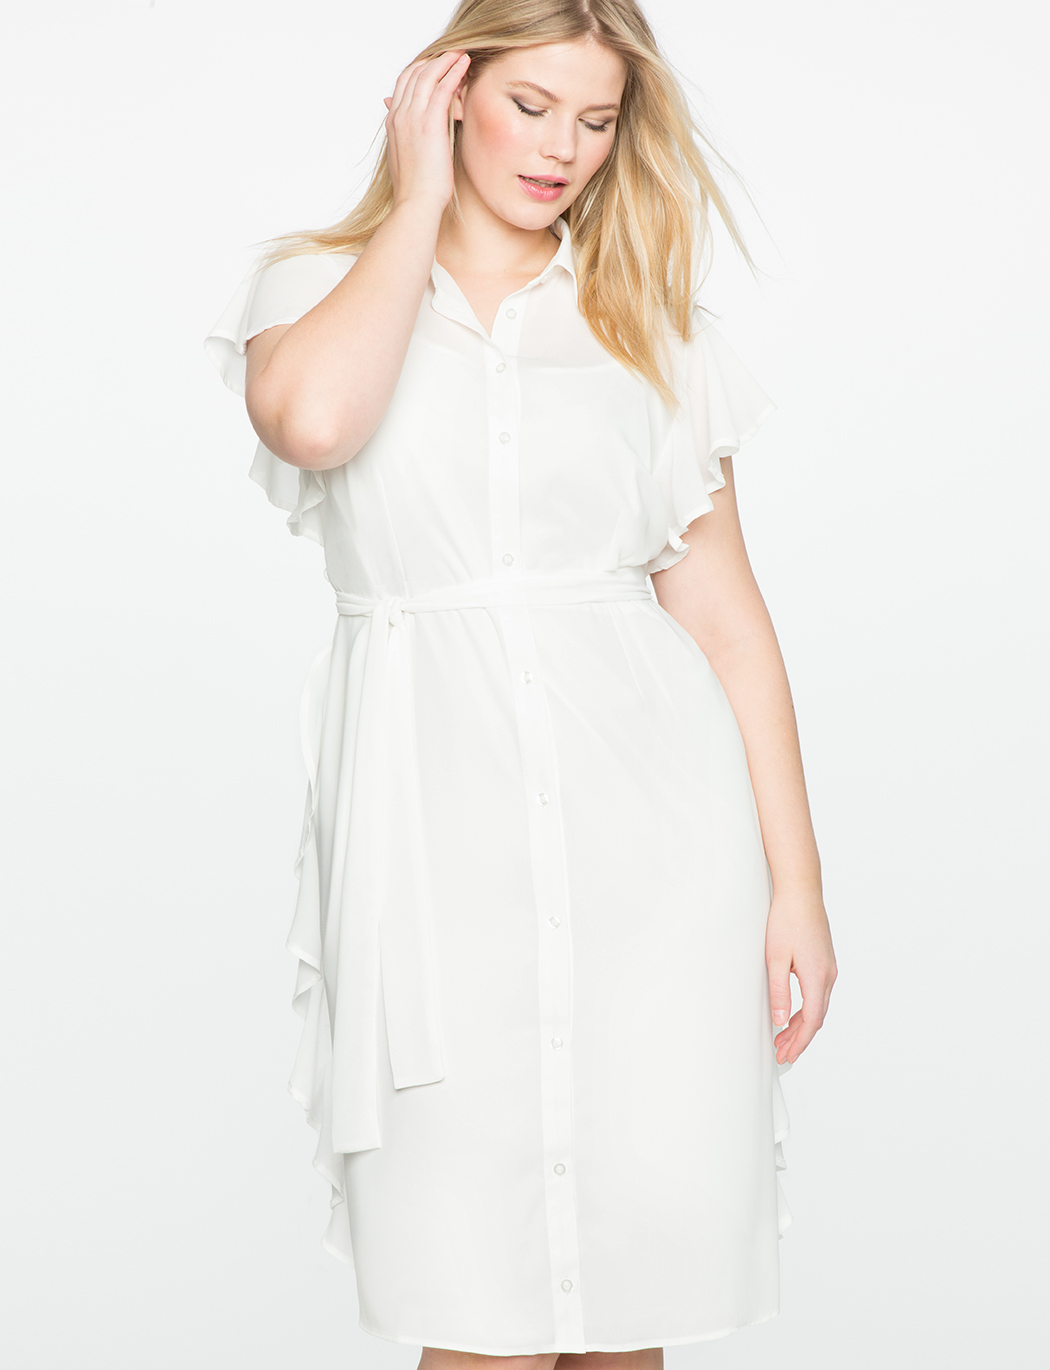 Shirt Dress with Side Tie and Flounce | Women\'s Plus Size Dresses | ELOQUII